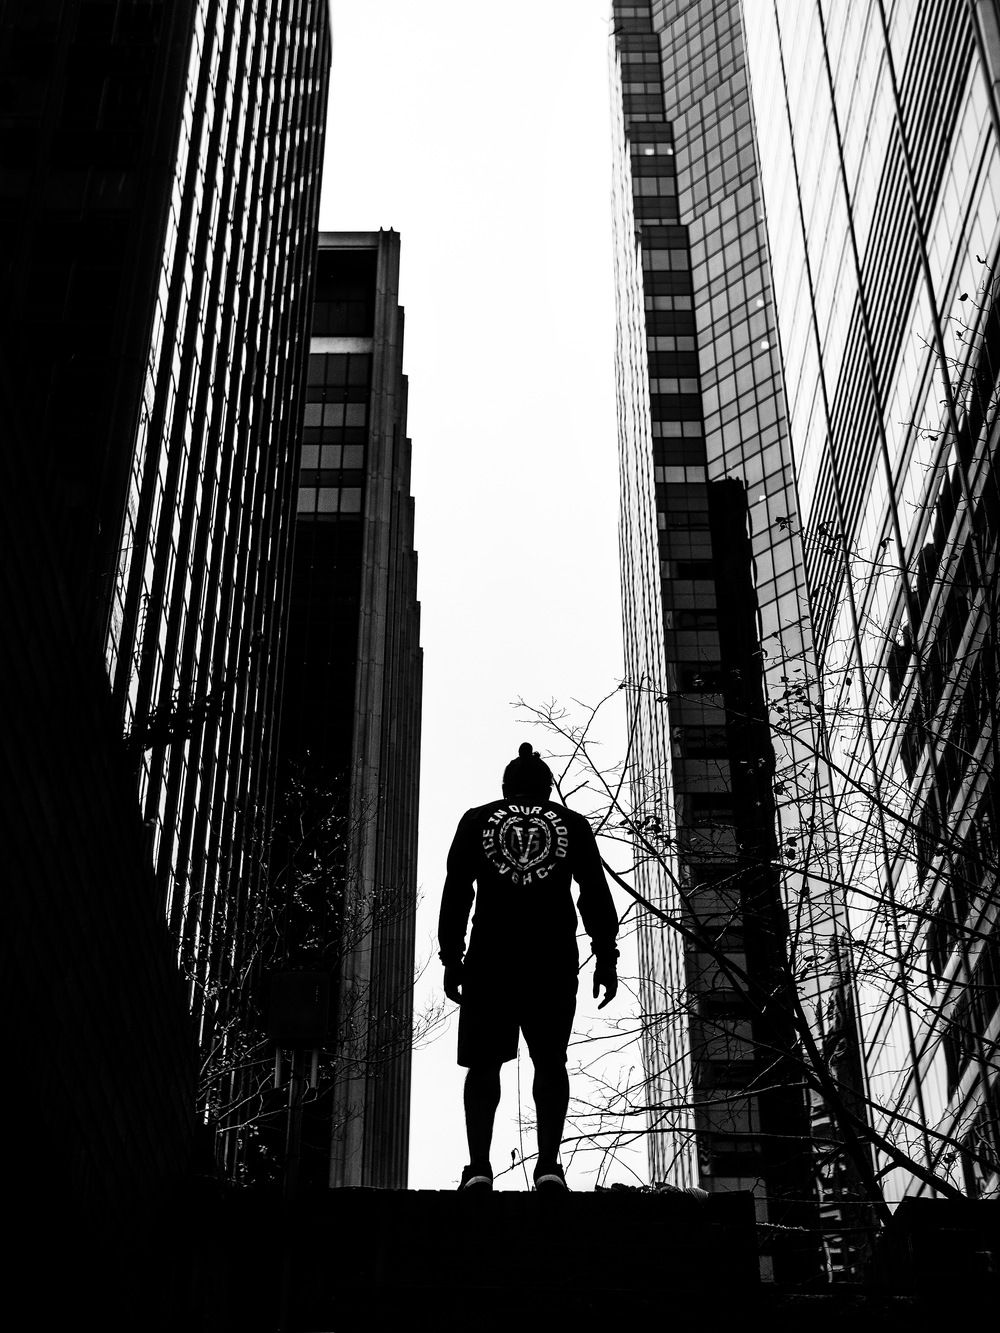 Mike-Araujo-Parkour-Freerunning-ViolentGents-Fashion-New-York-NY-NYC-Steve-Zavitz